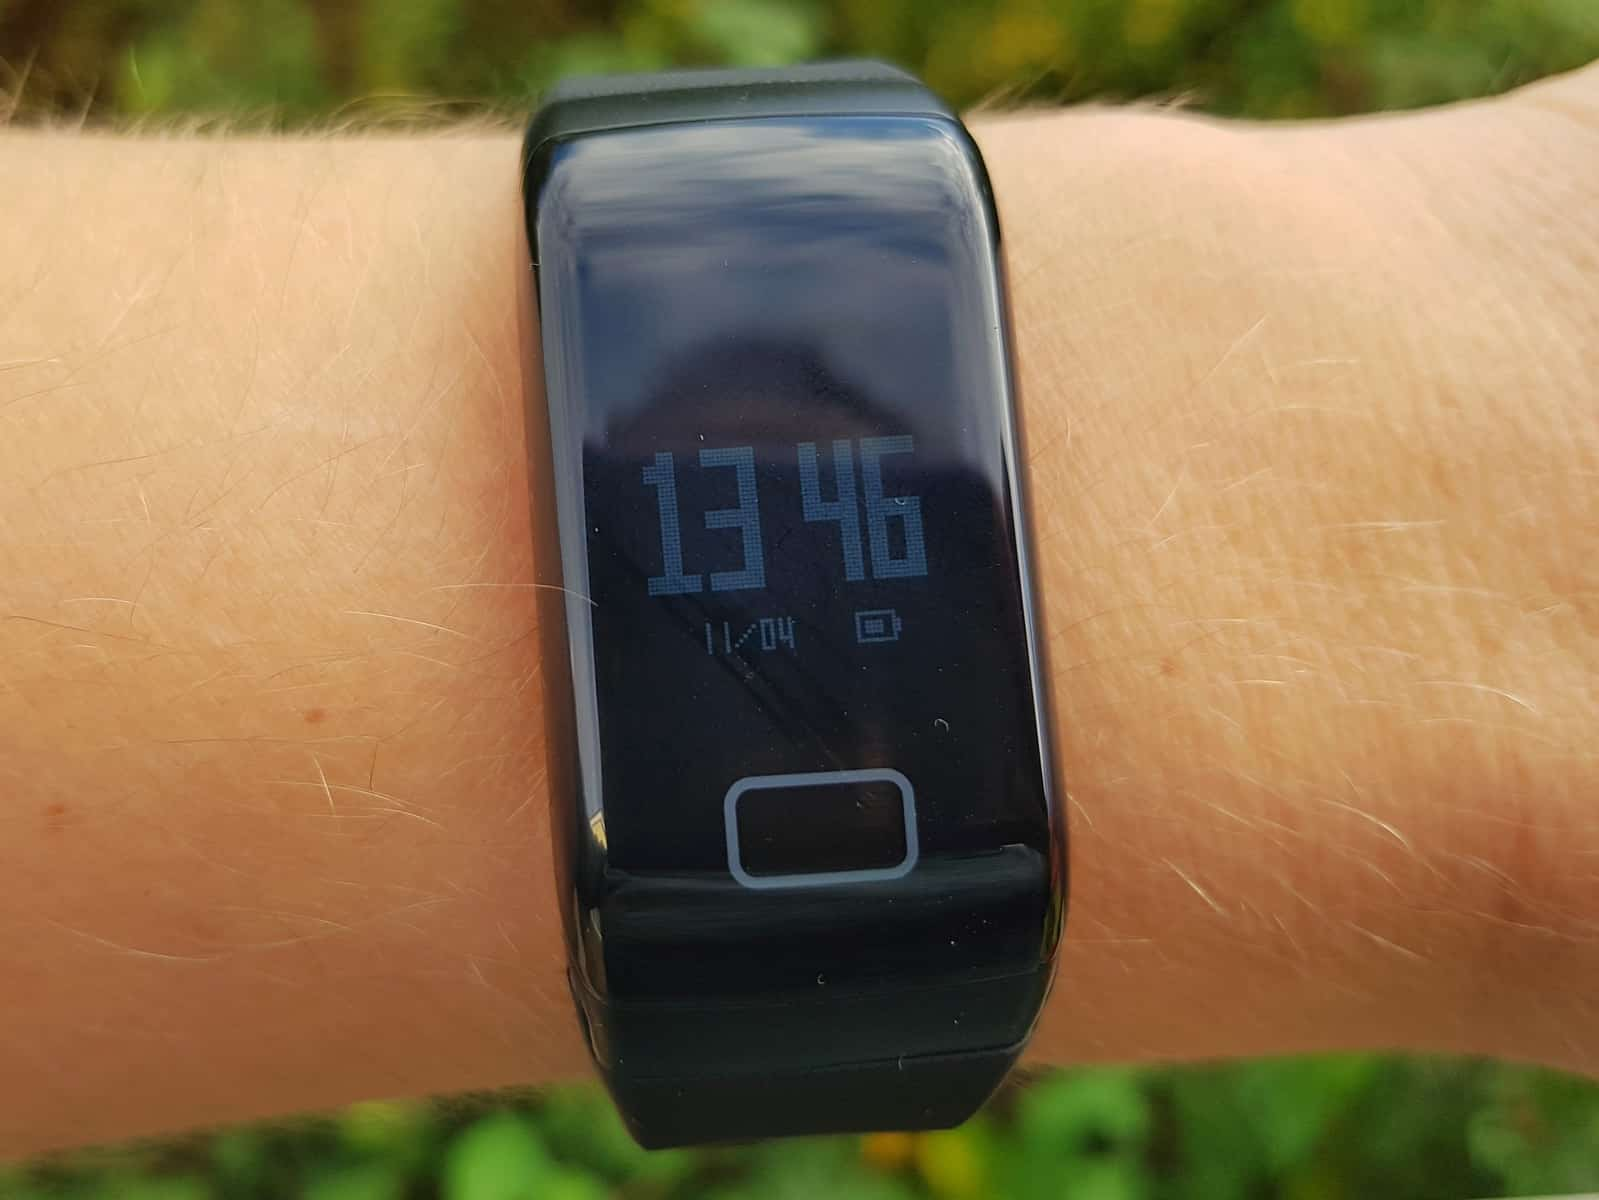 FourFit health band on wrist showing time